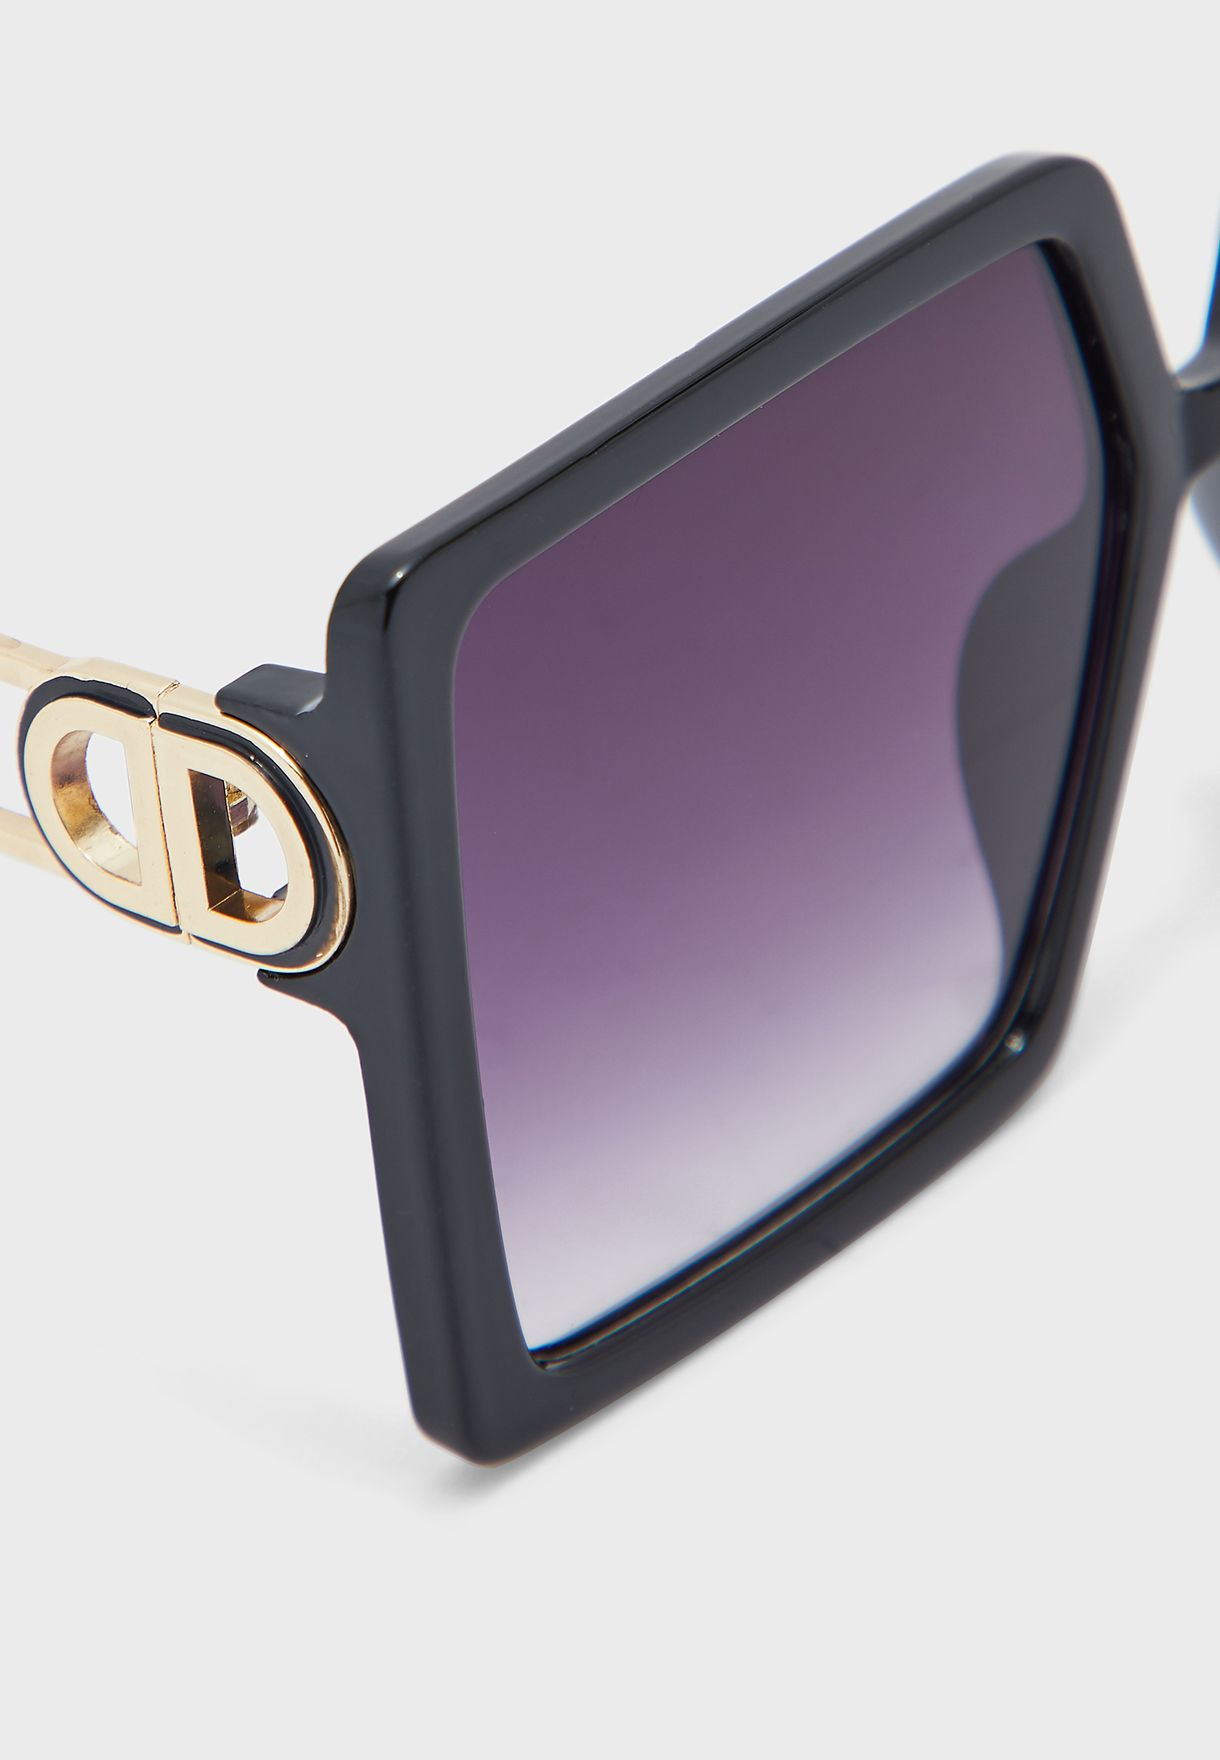 Square Sunglasses With Gold Metal Arms